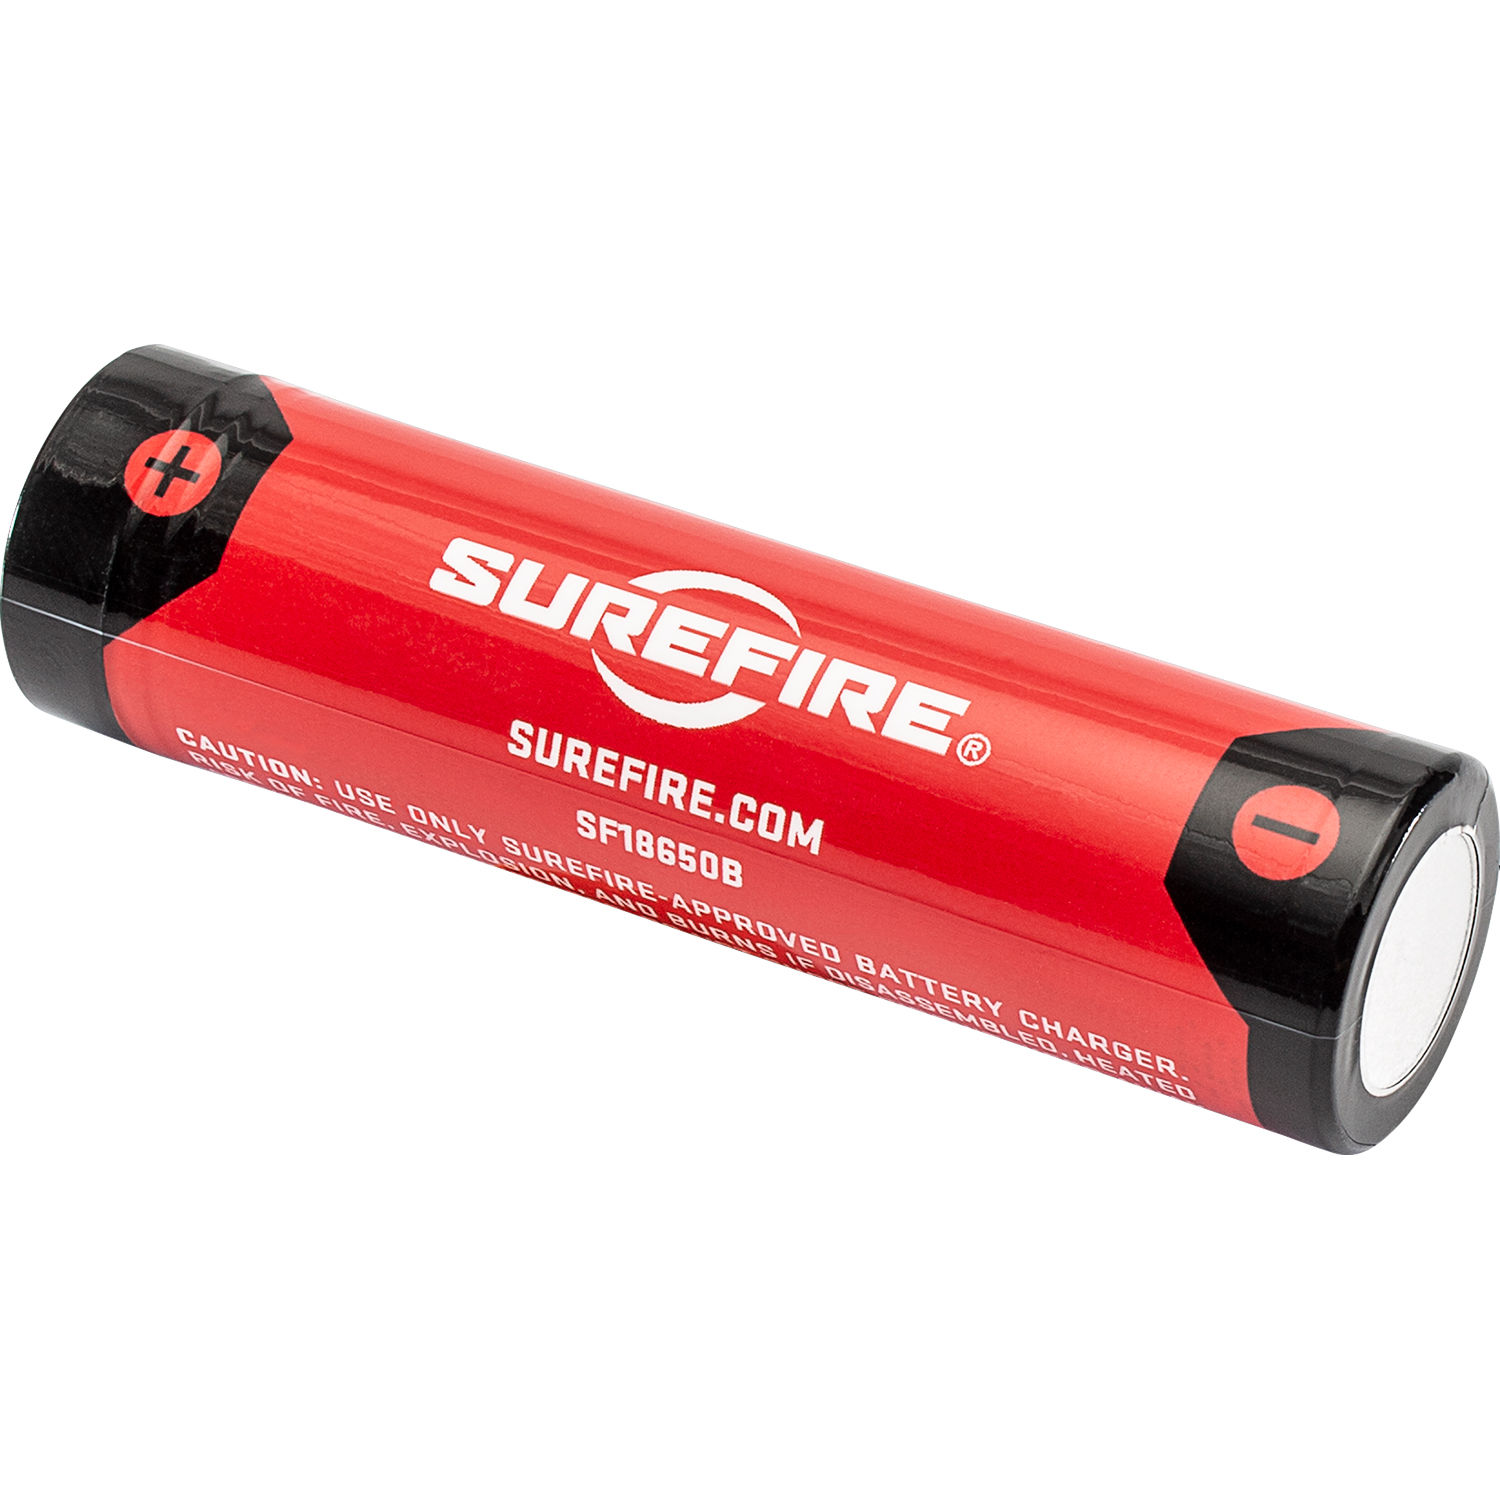 SureFire 18650 Li-Ion Rechargeable Battery with Charging